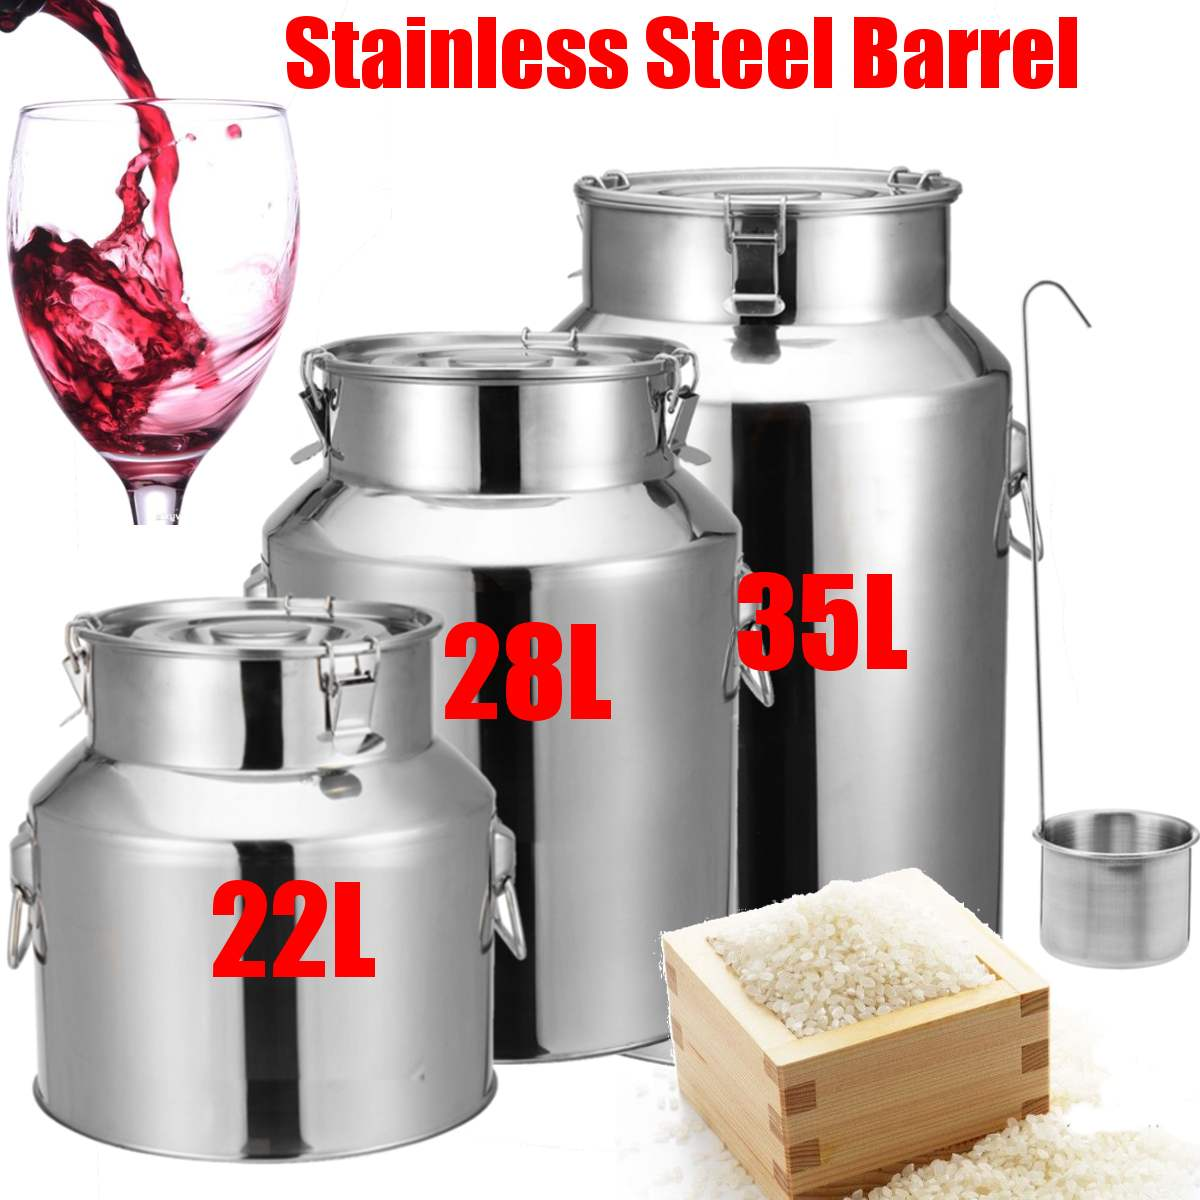 22/28/35L Stainless Steel Barrel Seal Beer Brewing Wine Beer Whiskey Rum Barrel Port Container Storage Oil Milk Rice Barrel